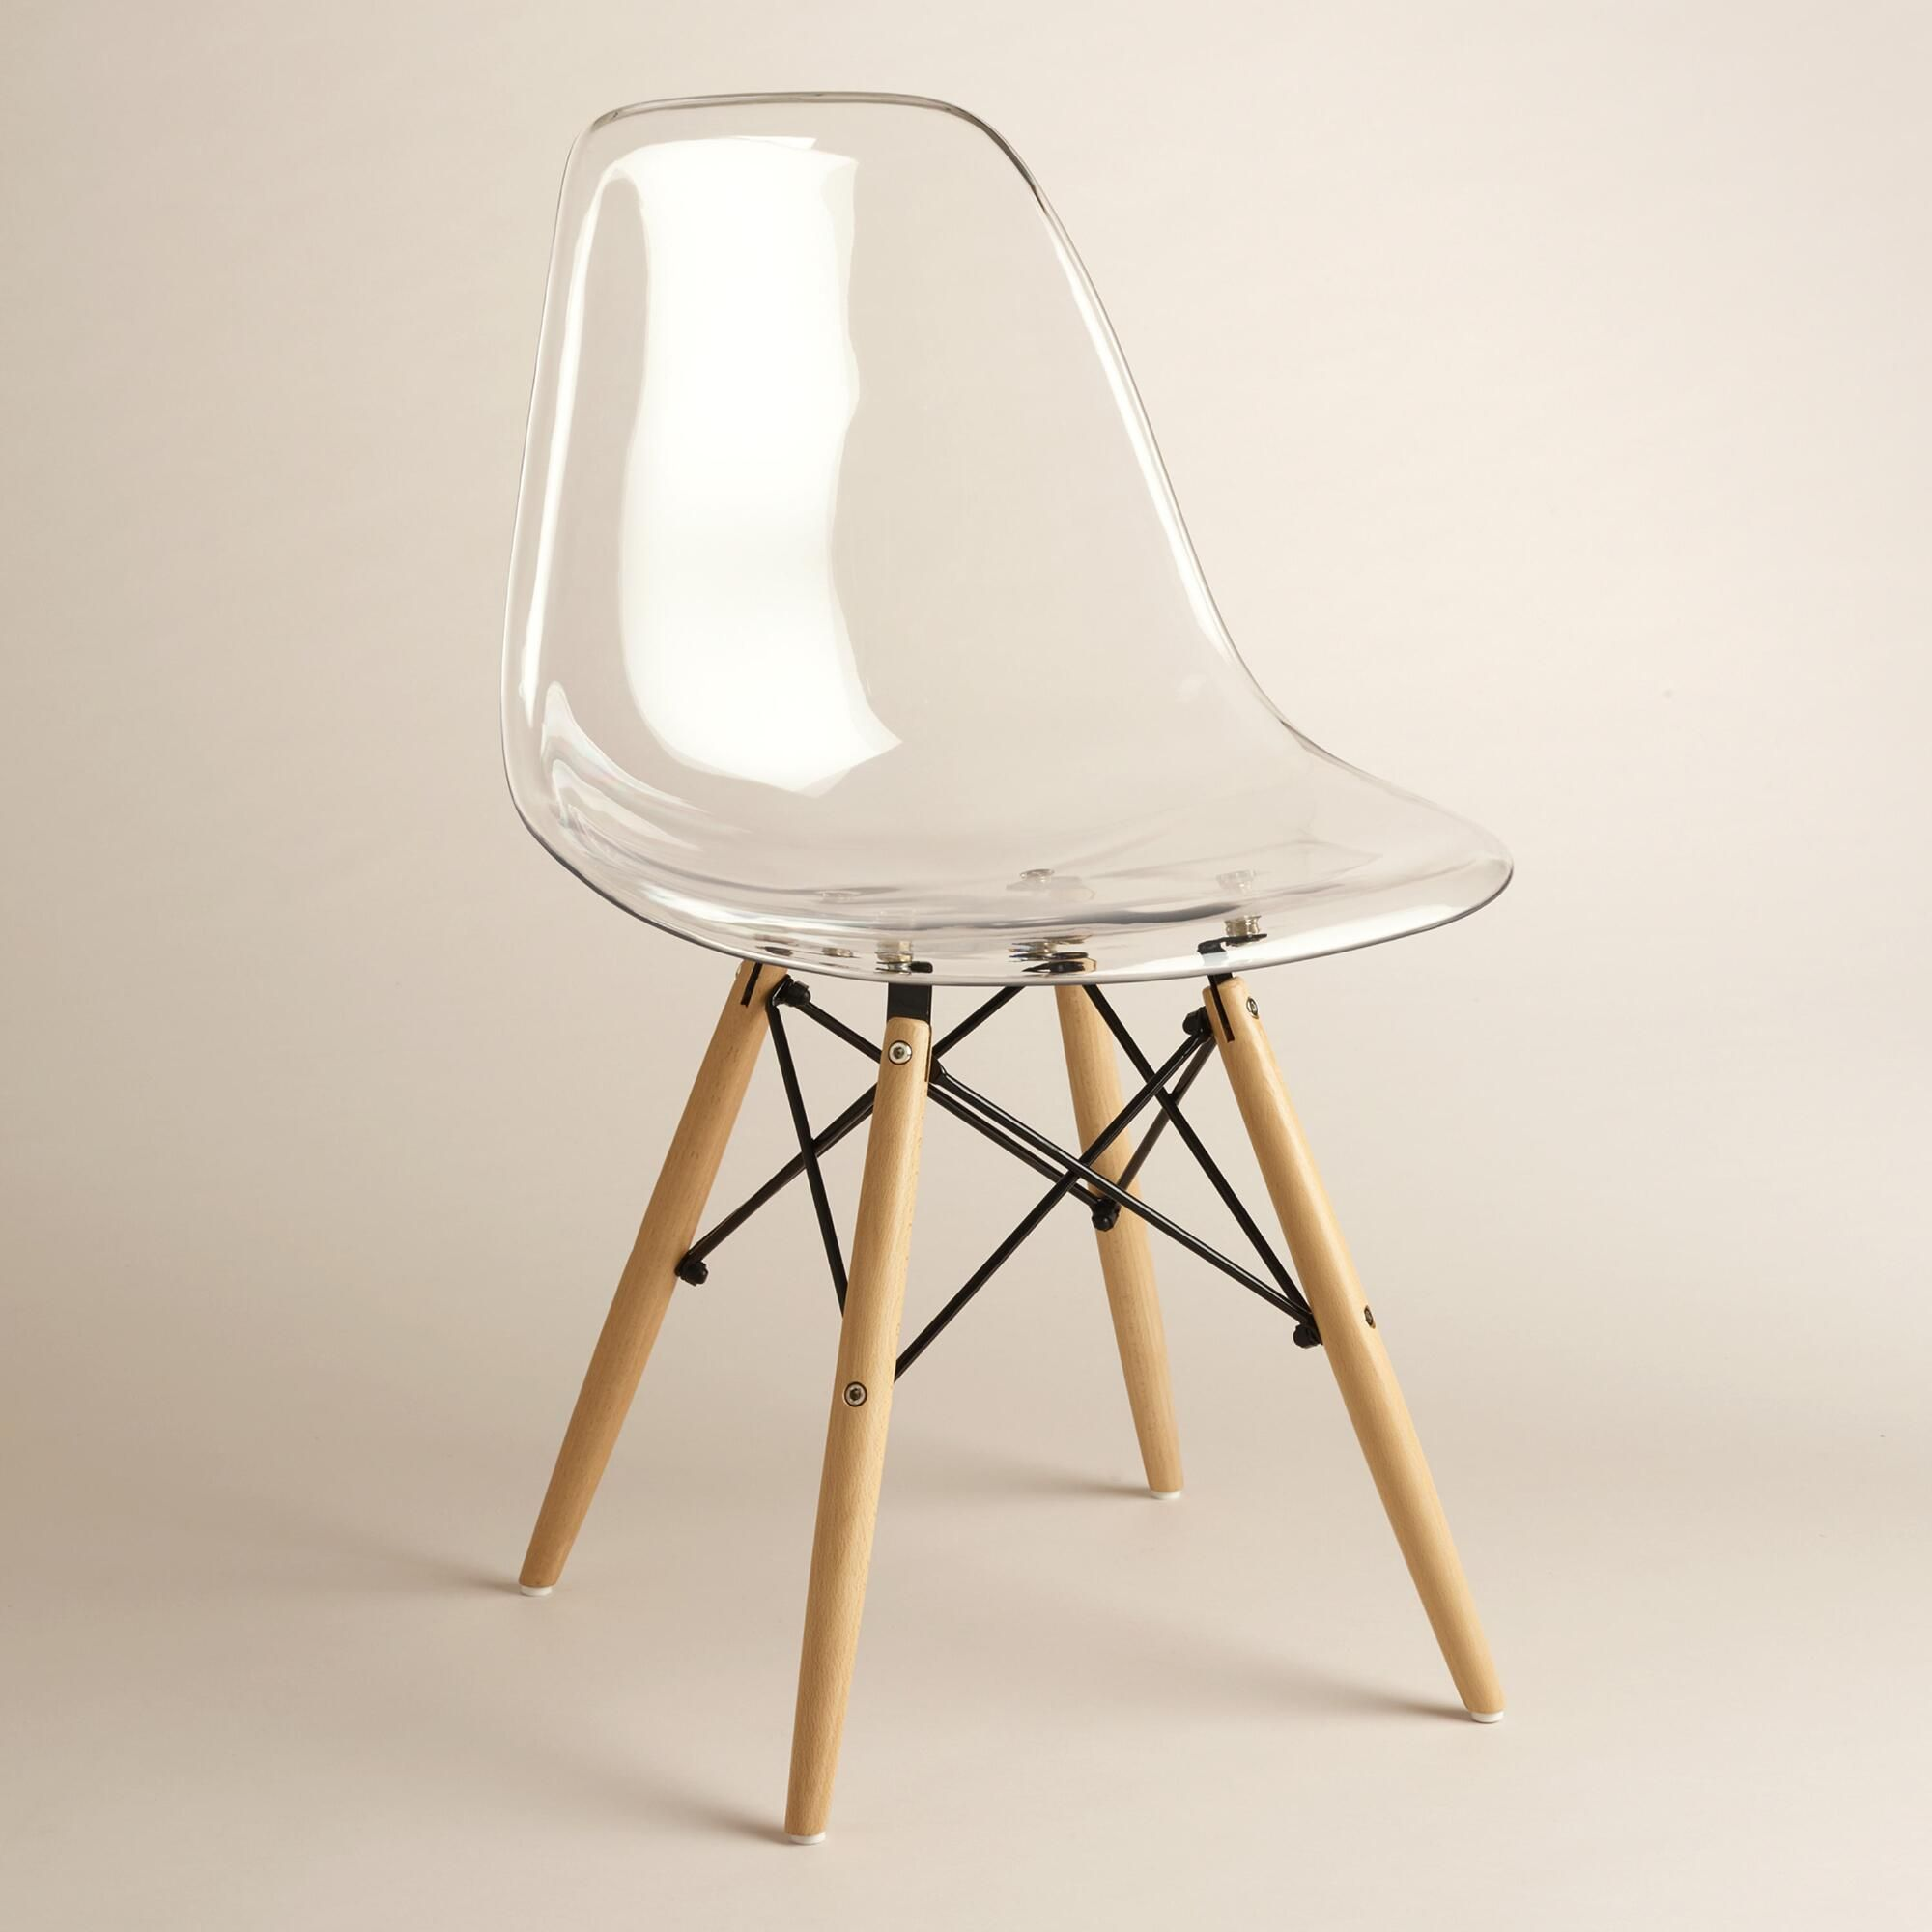 Modern aesthetic and a sculptural look our clear chairs have comfortable molded seats with flexible backs and rounded edges worldmarket home